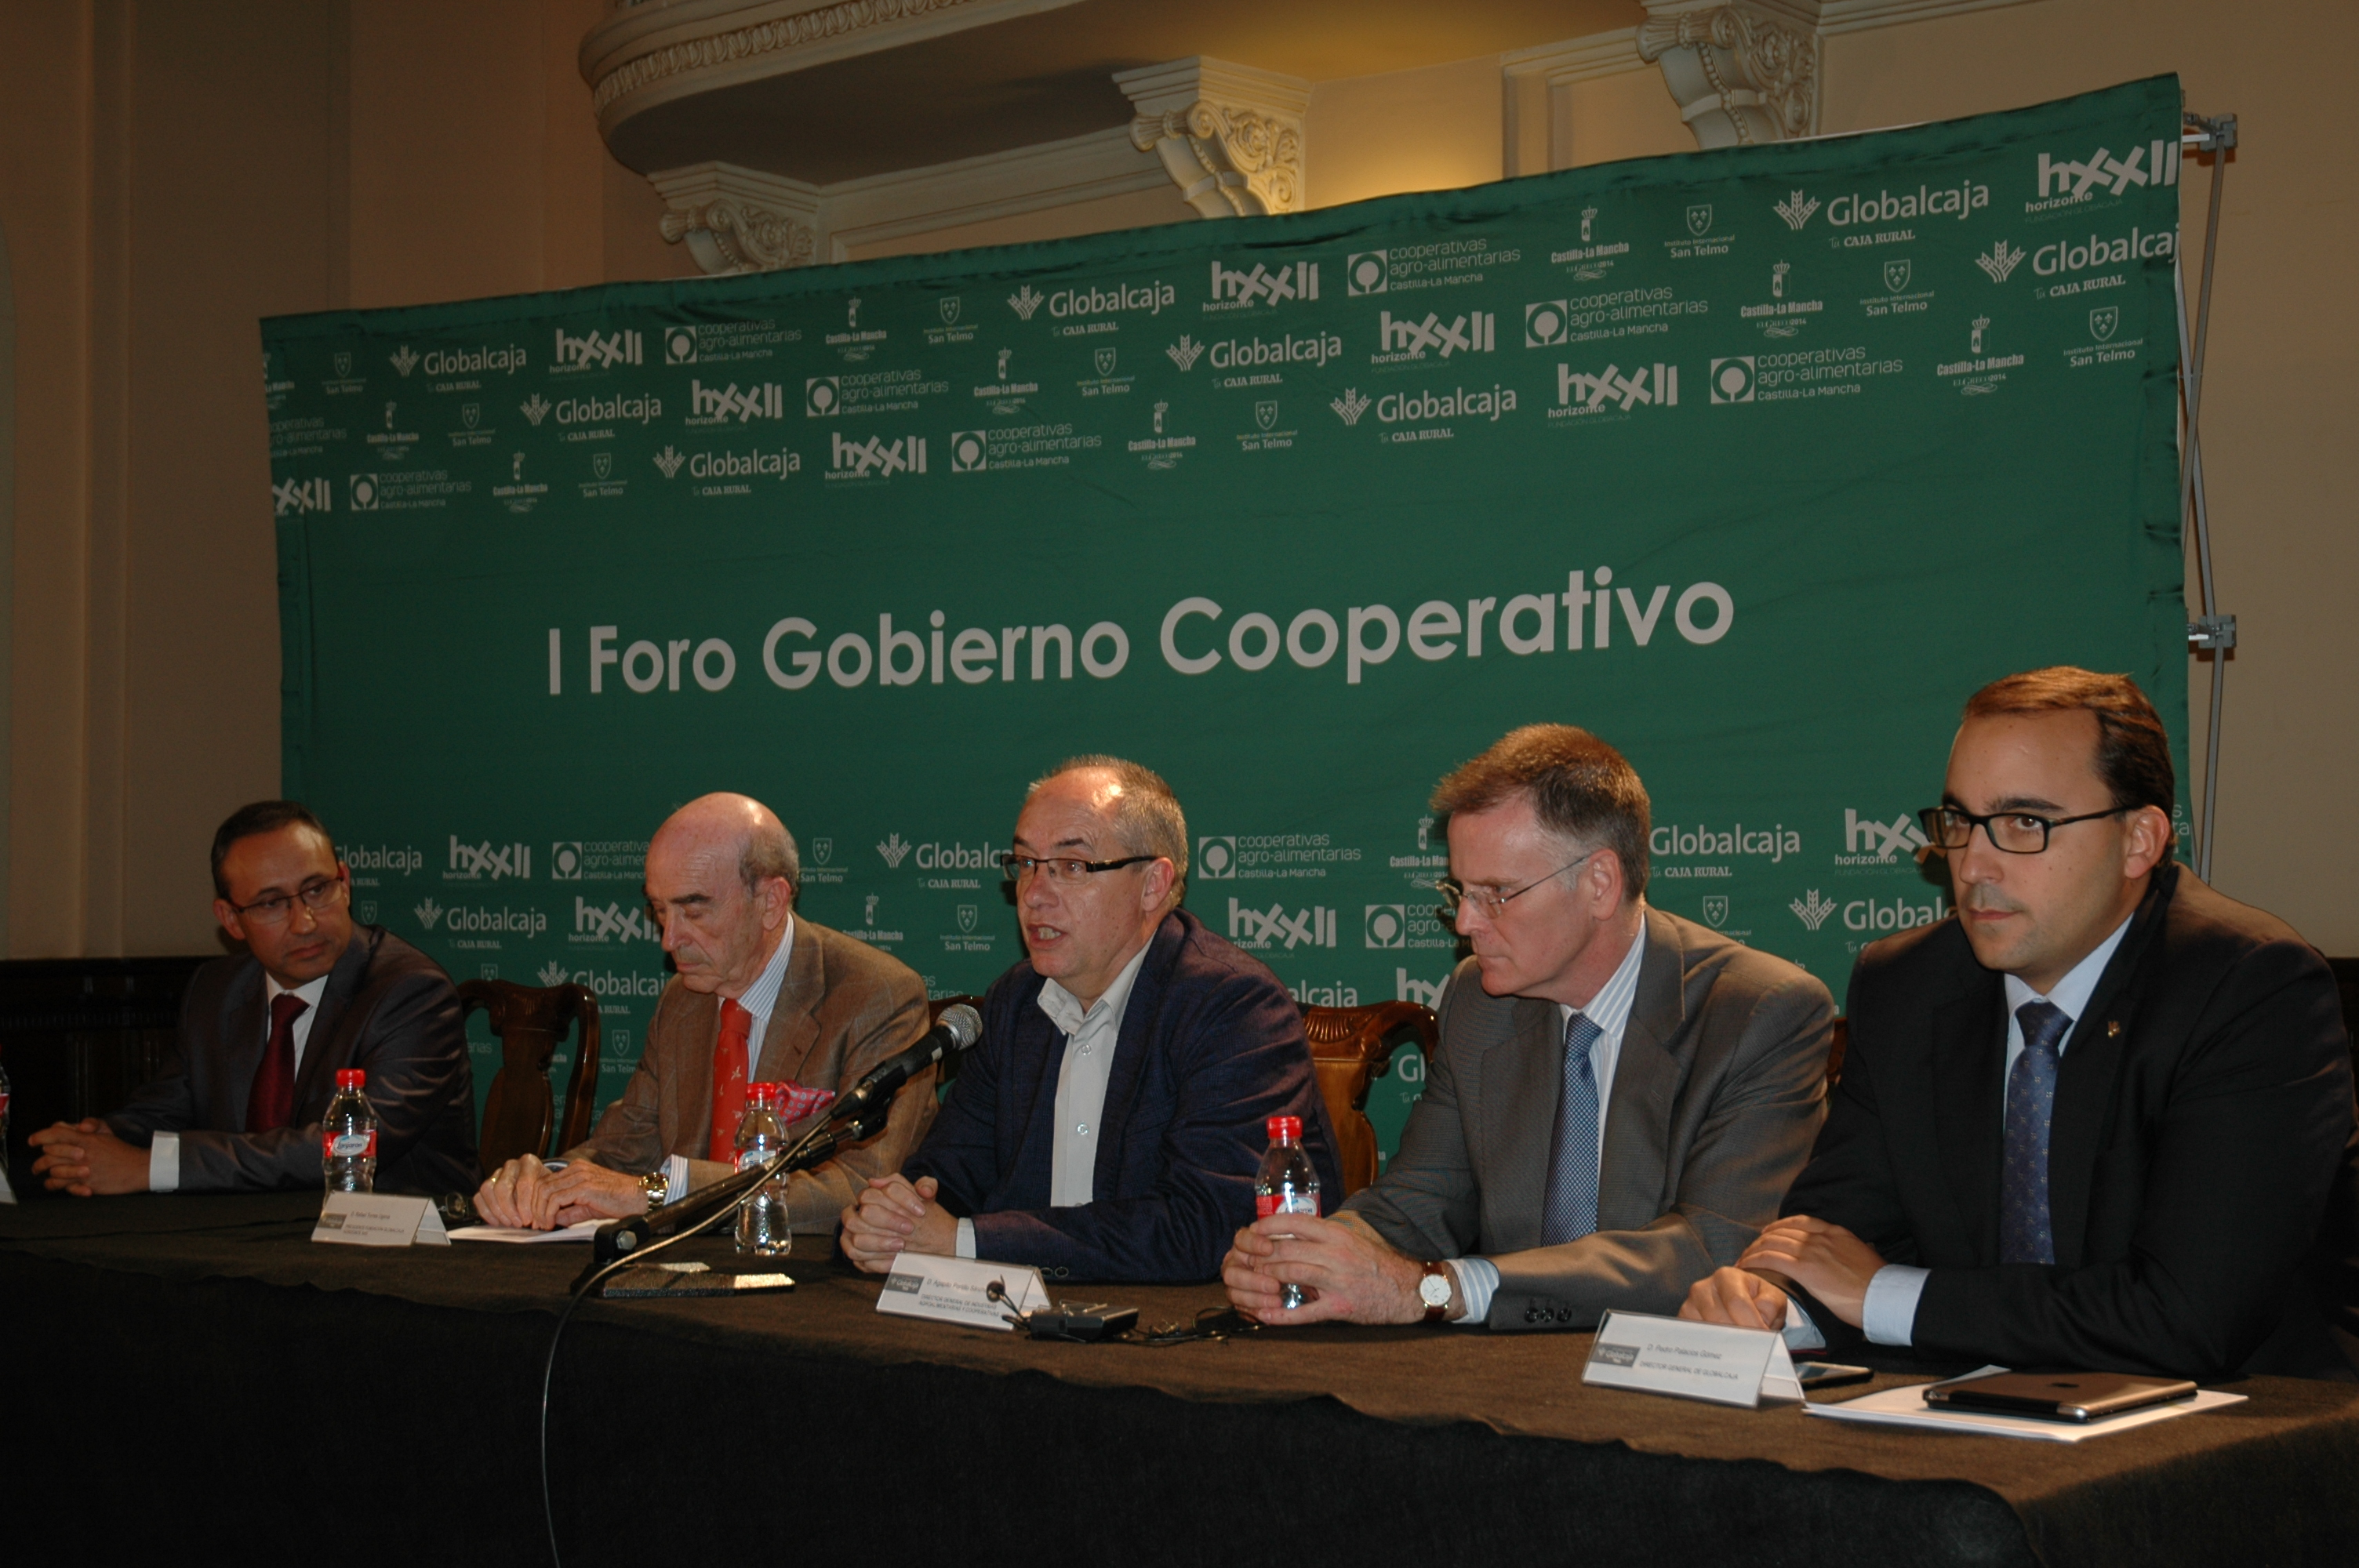 https://blog.globalcaja.es/wp-content/uploads/2015/11/Foro-CR-clausura-1.jpg